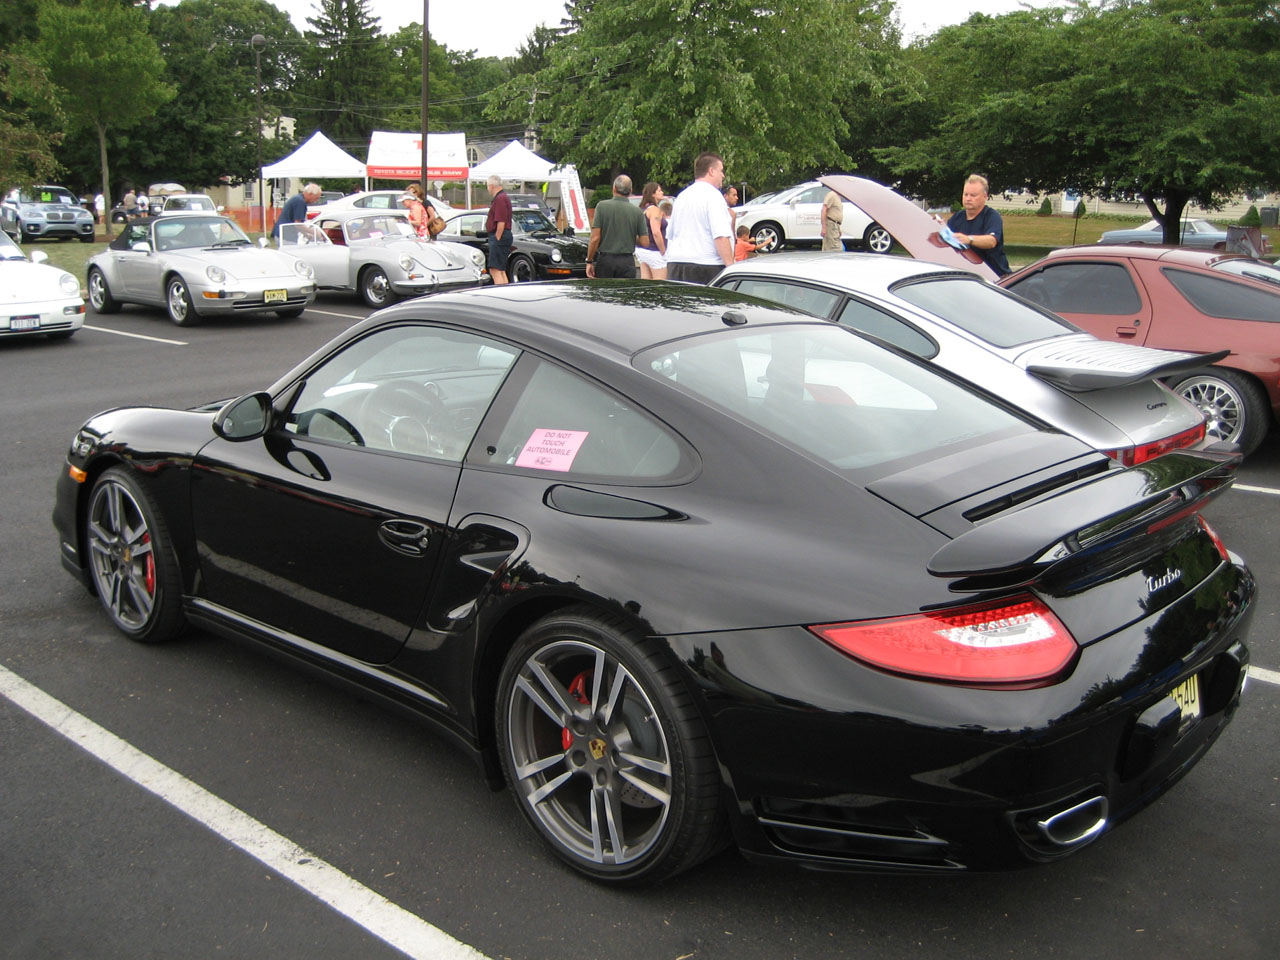 2010 porsche 911 turbo coupe pdk 1 4 mile drag racing timeslip specs 0 60. Black Bedroom Furniture Sets. Home Design Ideas